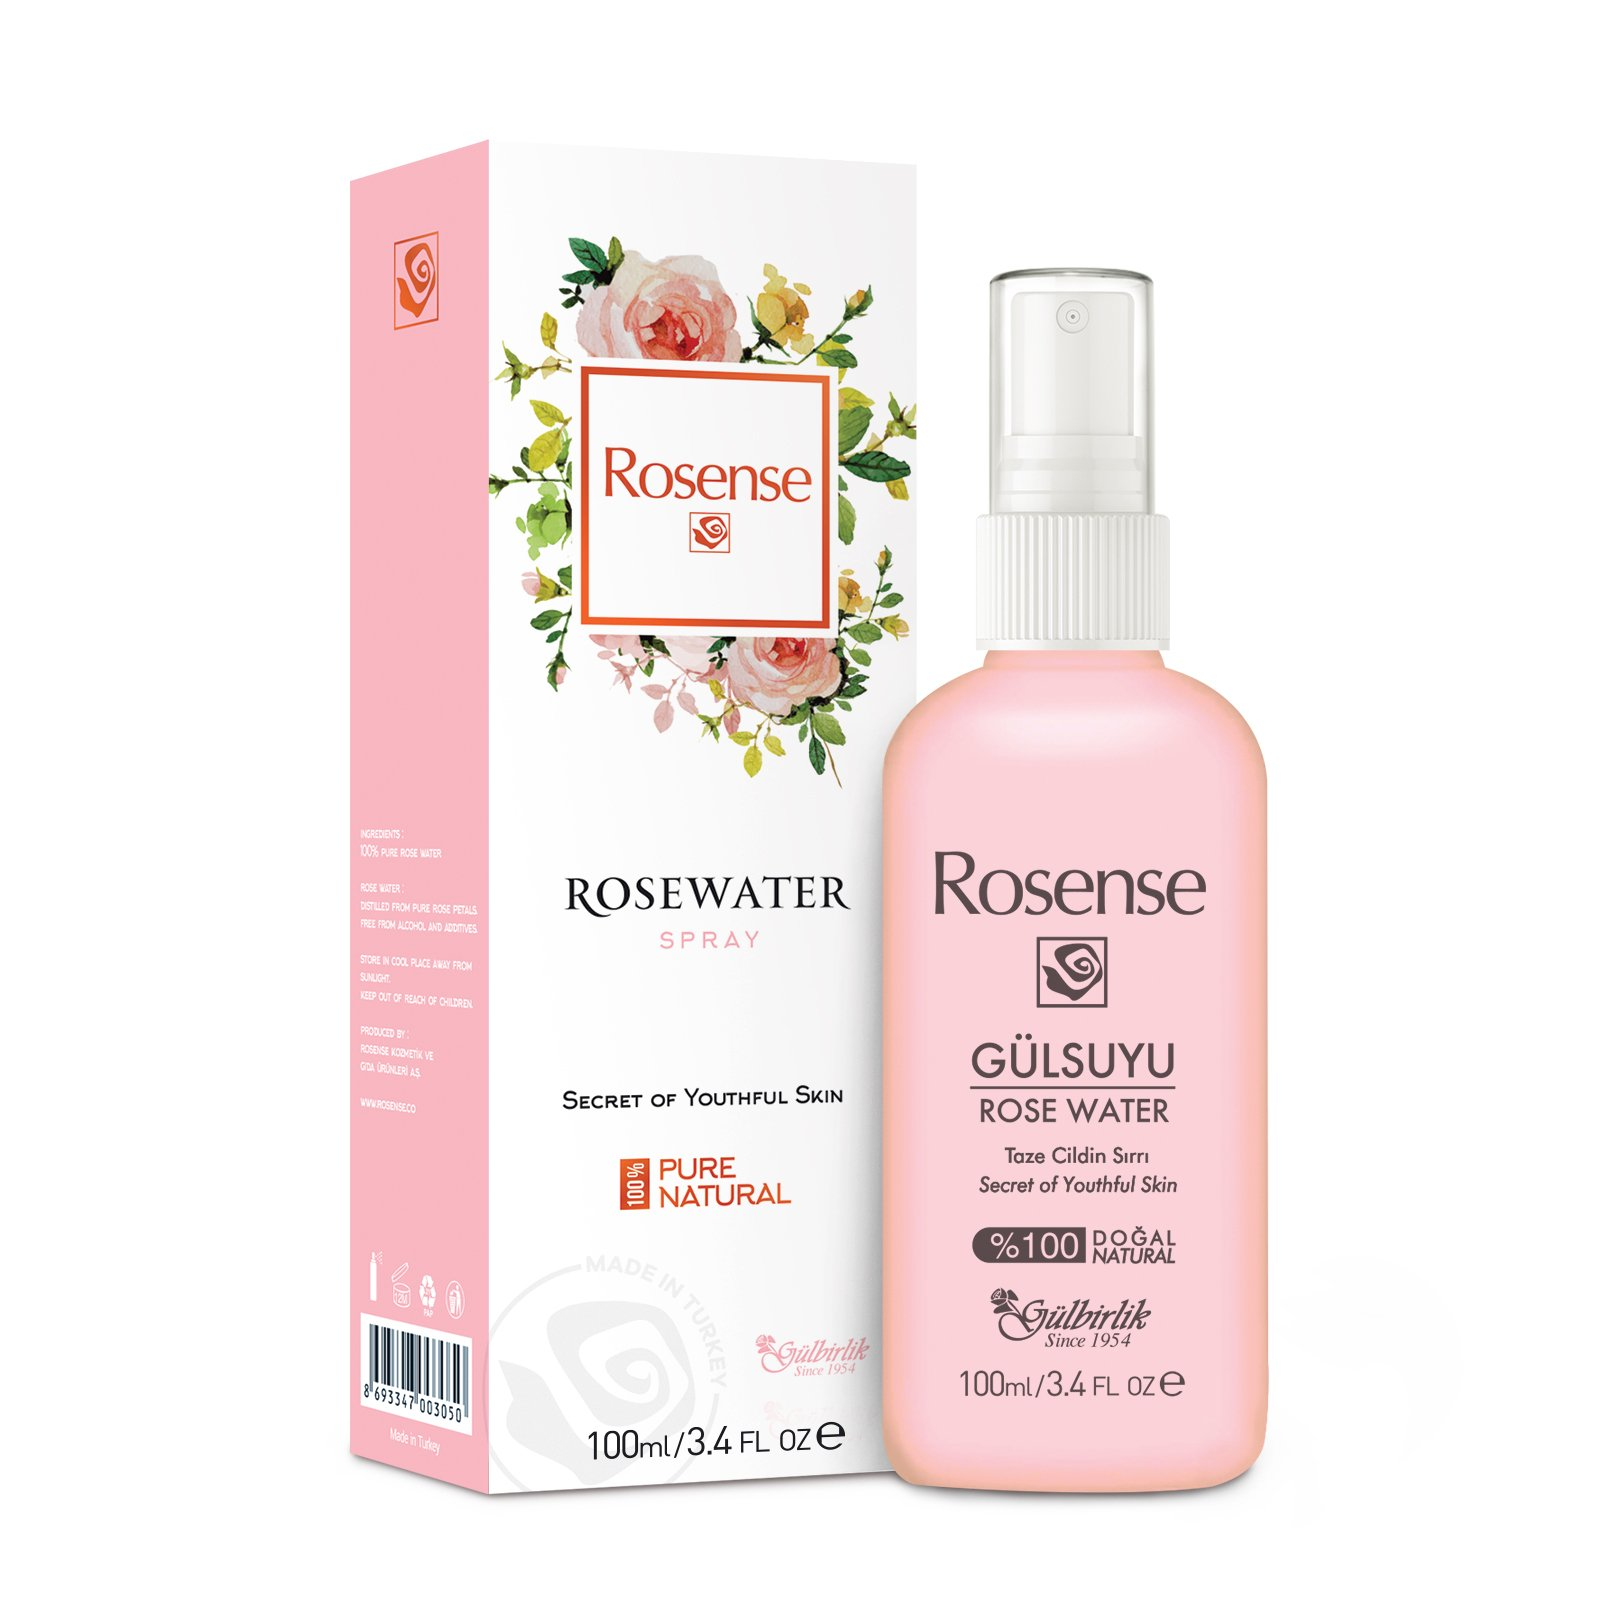 100% Pure Natural Vegan Turkish Rosewater Hydrating Face Mist/Rose Water Face Toner (No Additives, No Chemicals, No Preservatives) 100mL/3.4 Oz by Rosense